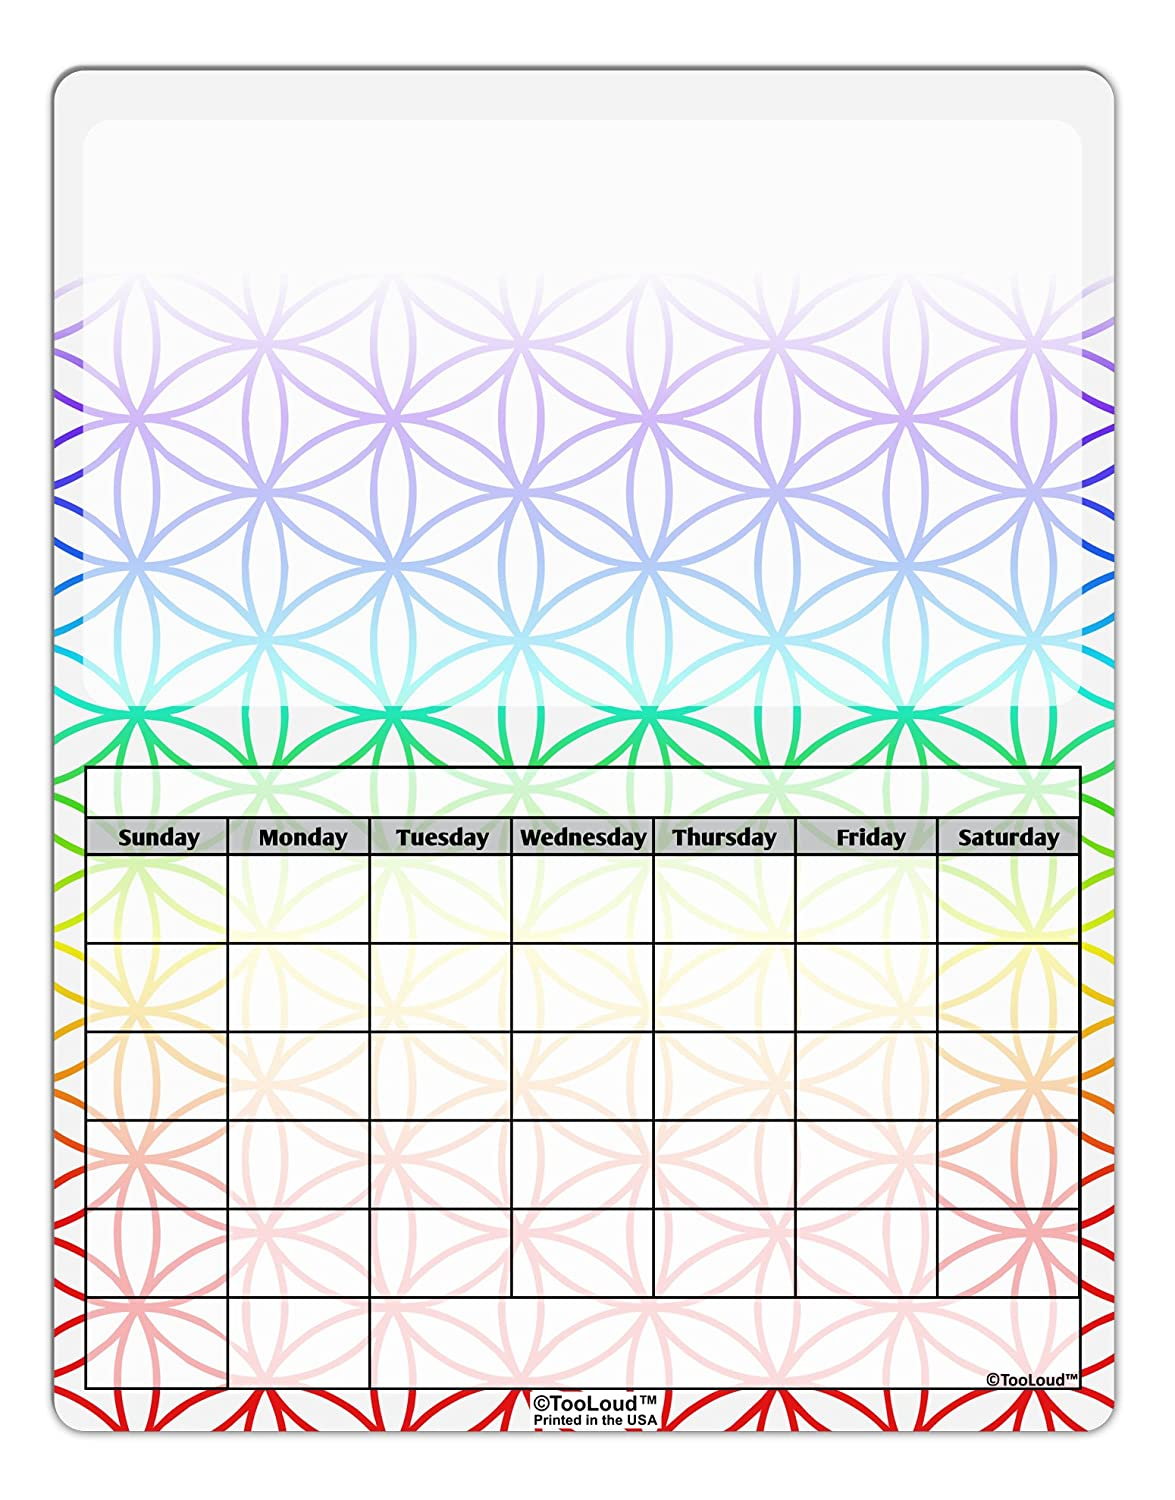 TooLoud Chakra Flower of Life on White Blank Calendar Dry Erase Board All Over Print